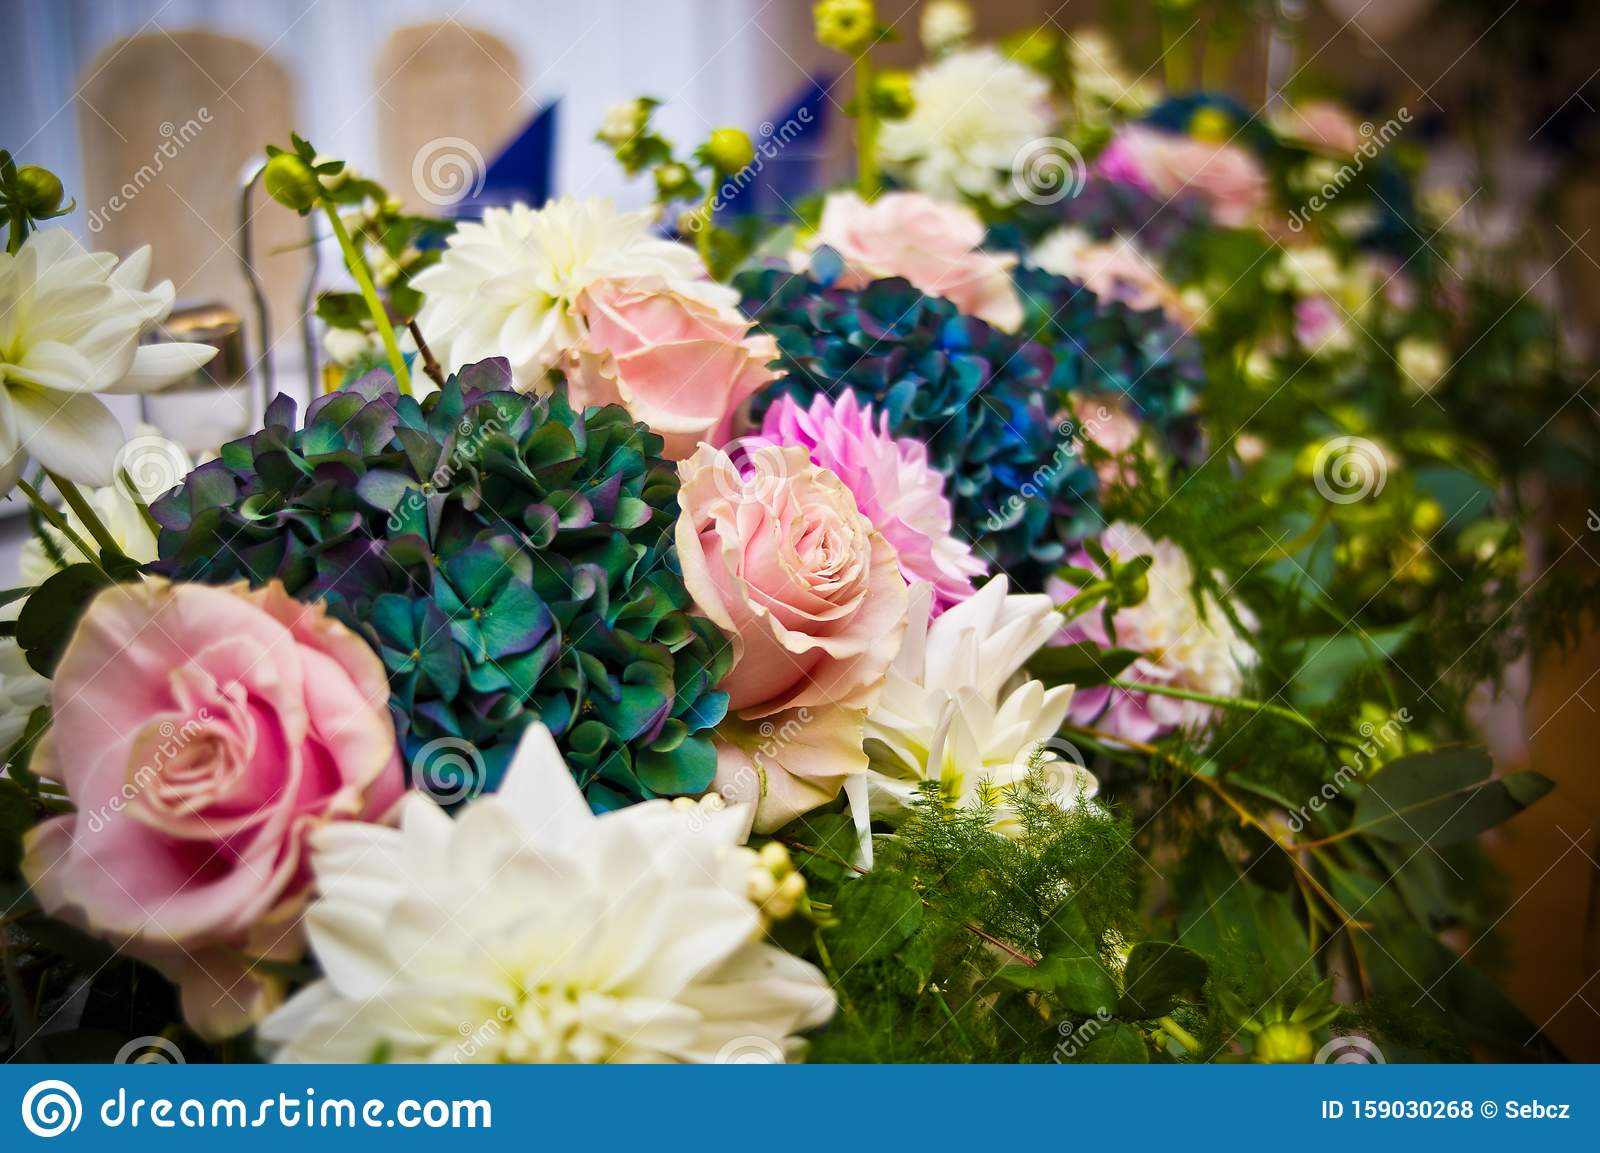 Wedding Hall Table Flowers Decoration Detail Stock Photo Image Of Decorative Saturated 159030268